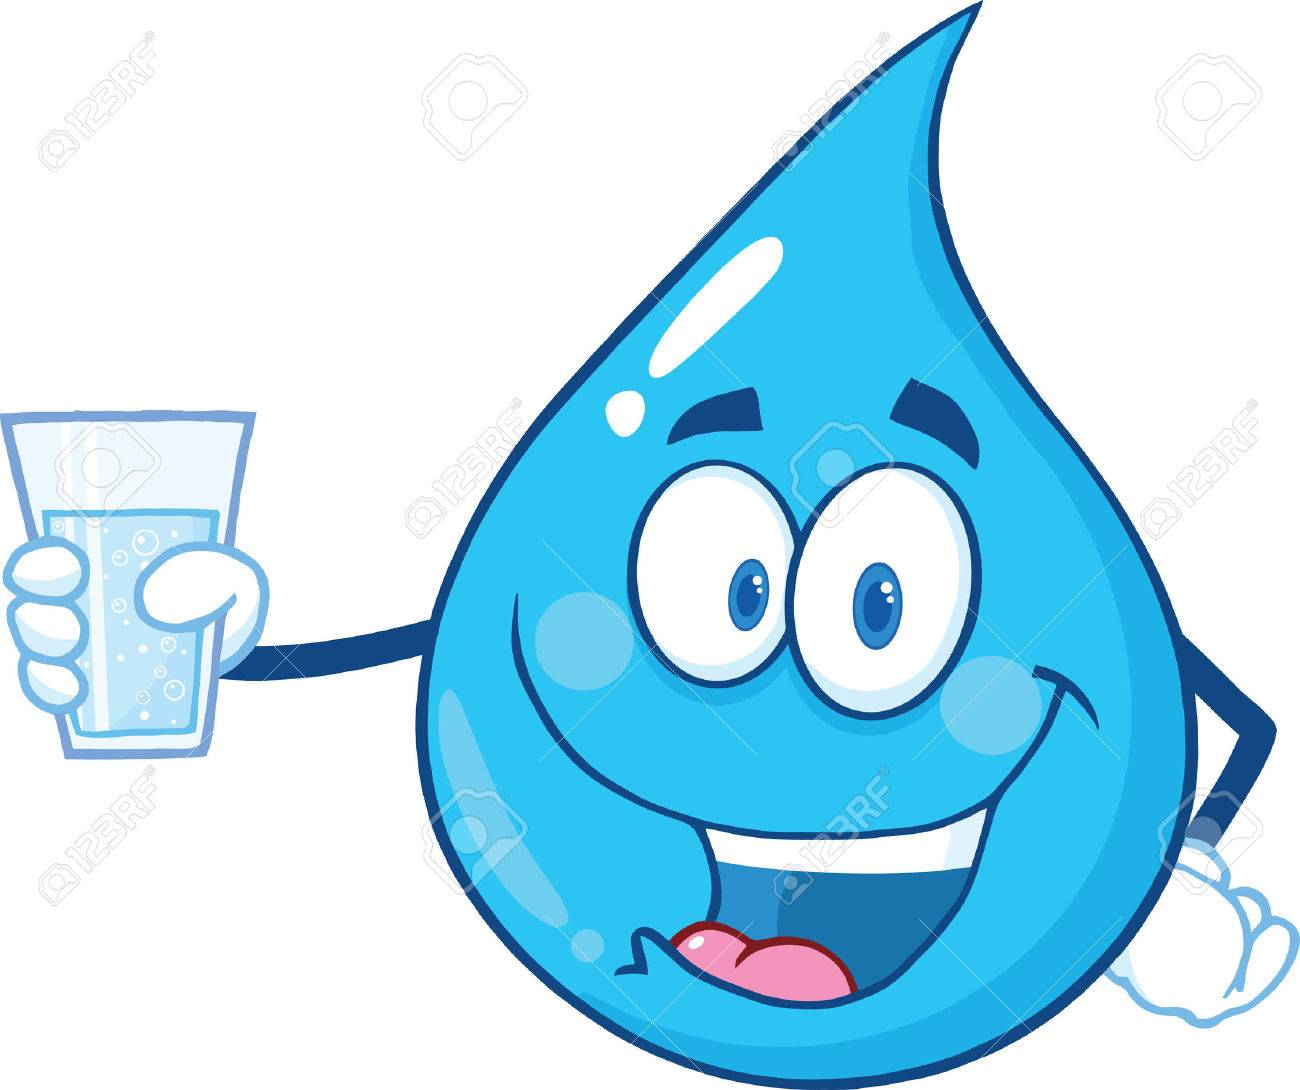 Water Drop Character Holding A Water Glass. Illustration Isolated On White Background - 33669062